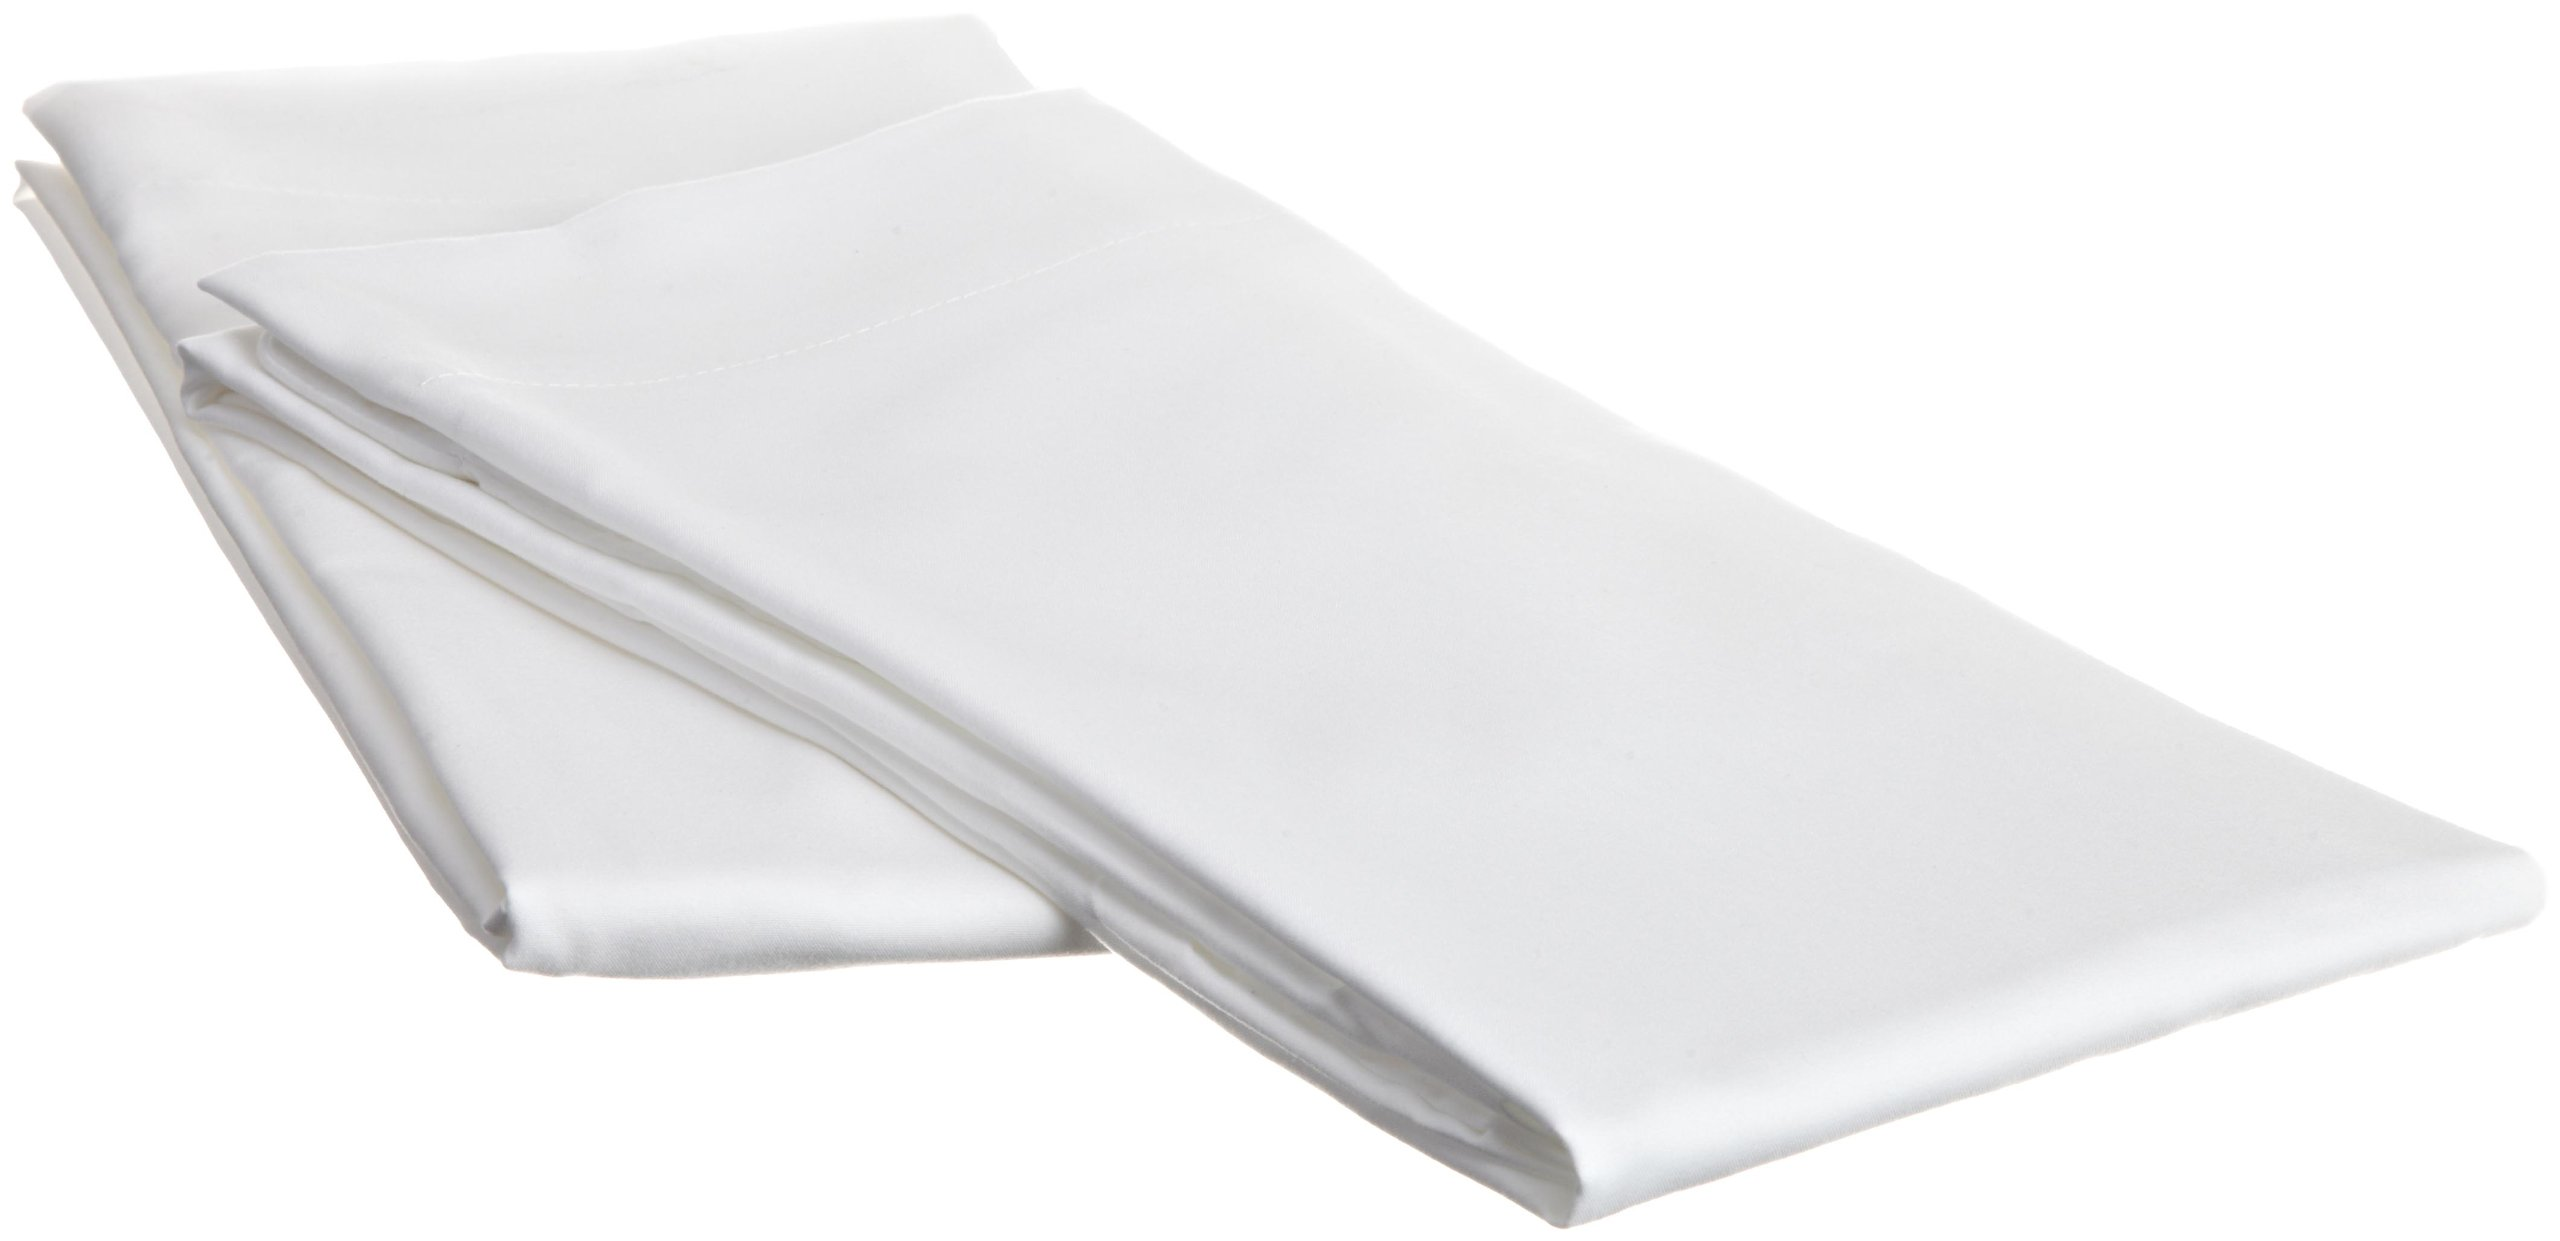 Luxury Soft 2-Piece Set King Size Pillow Cases of 100-Percent Microfiber Construction in White, 20''x40''